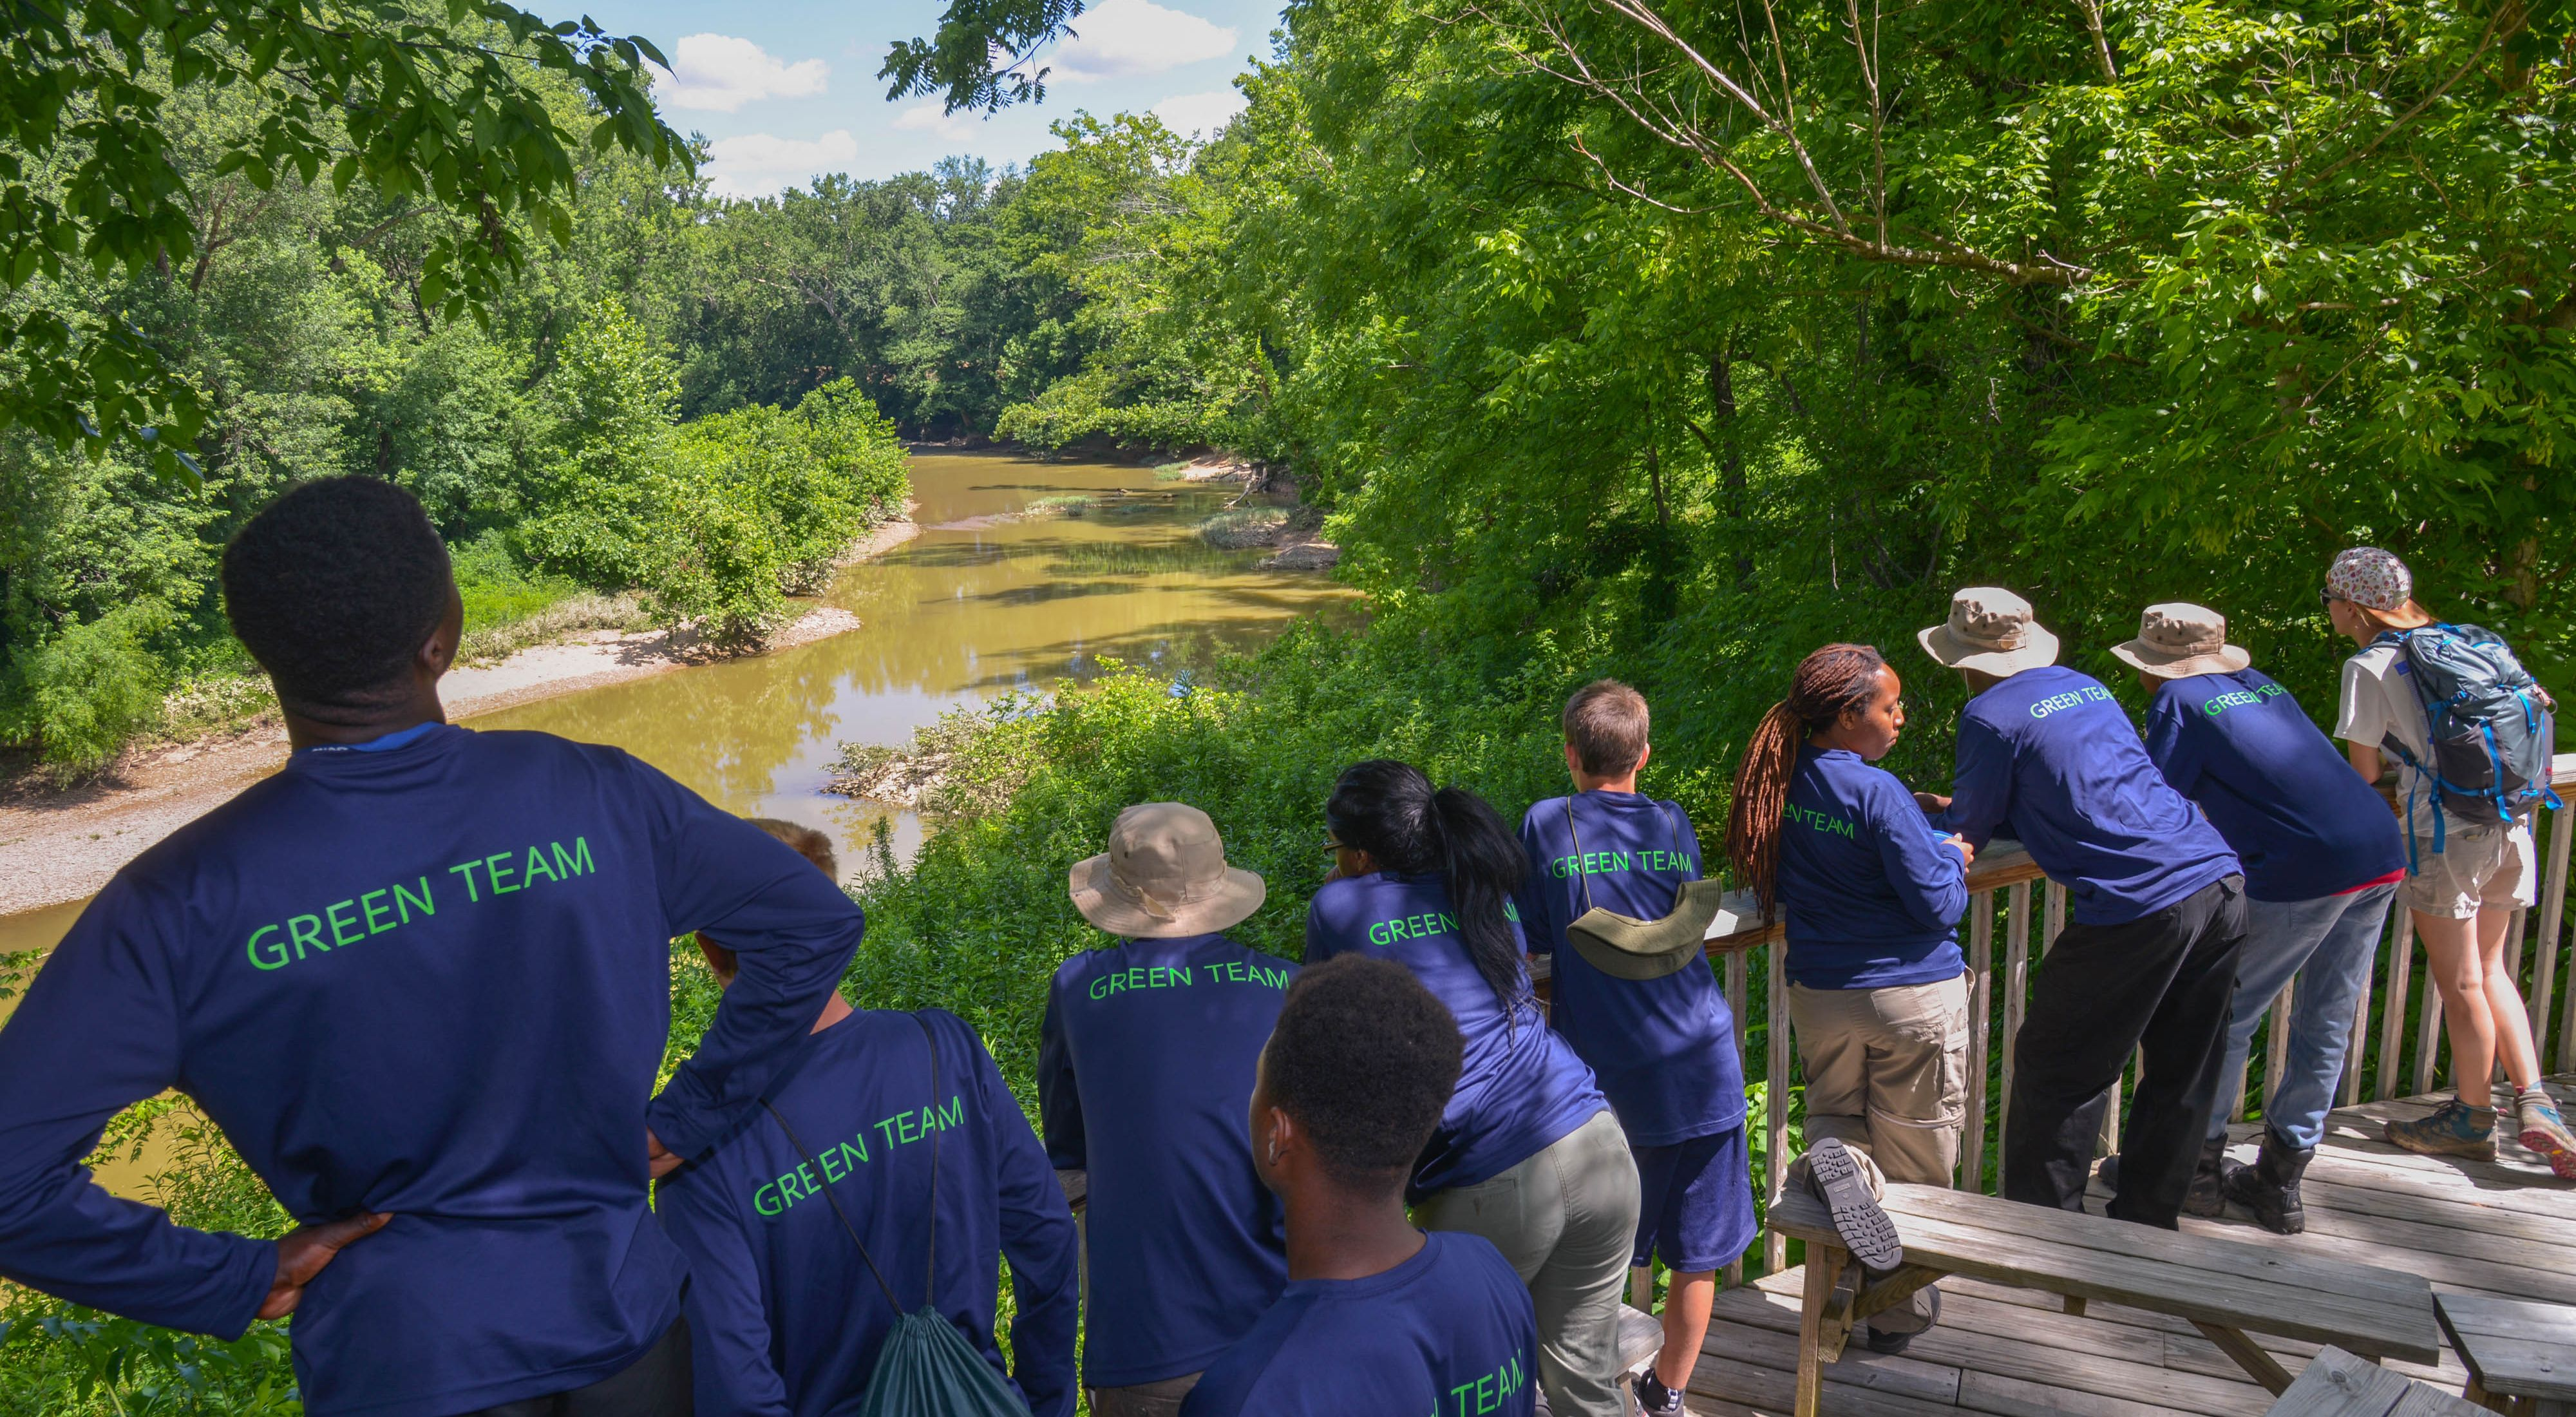 A row of teenagers in matching blue shirts stand along a wooden rail overlooking a river, surrounded by lush, green leaves.